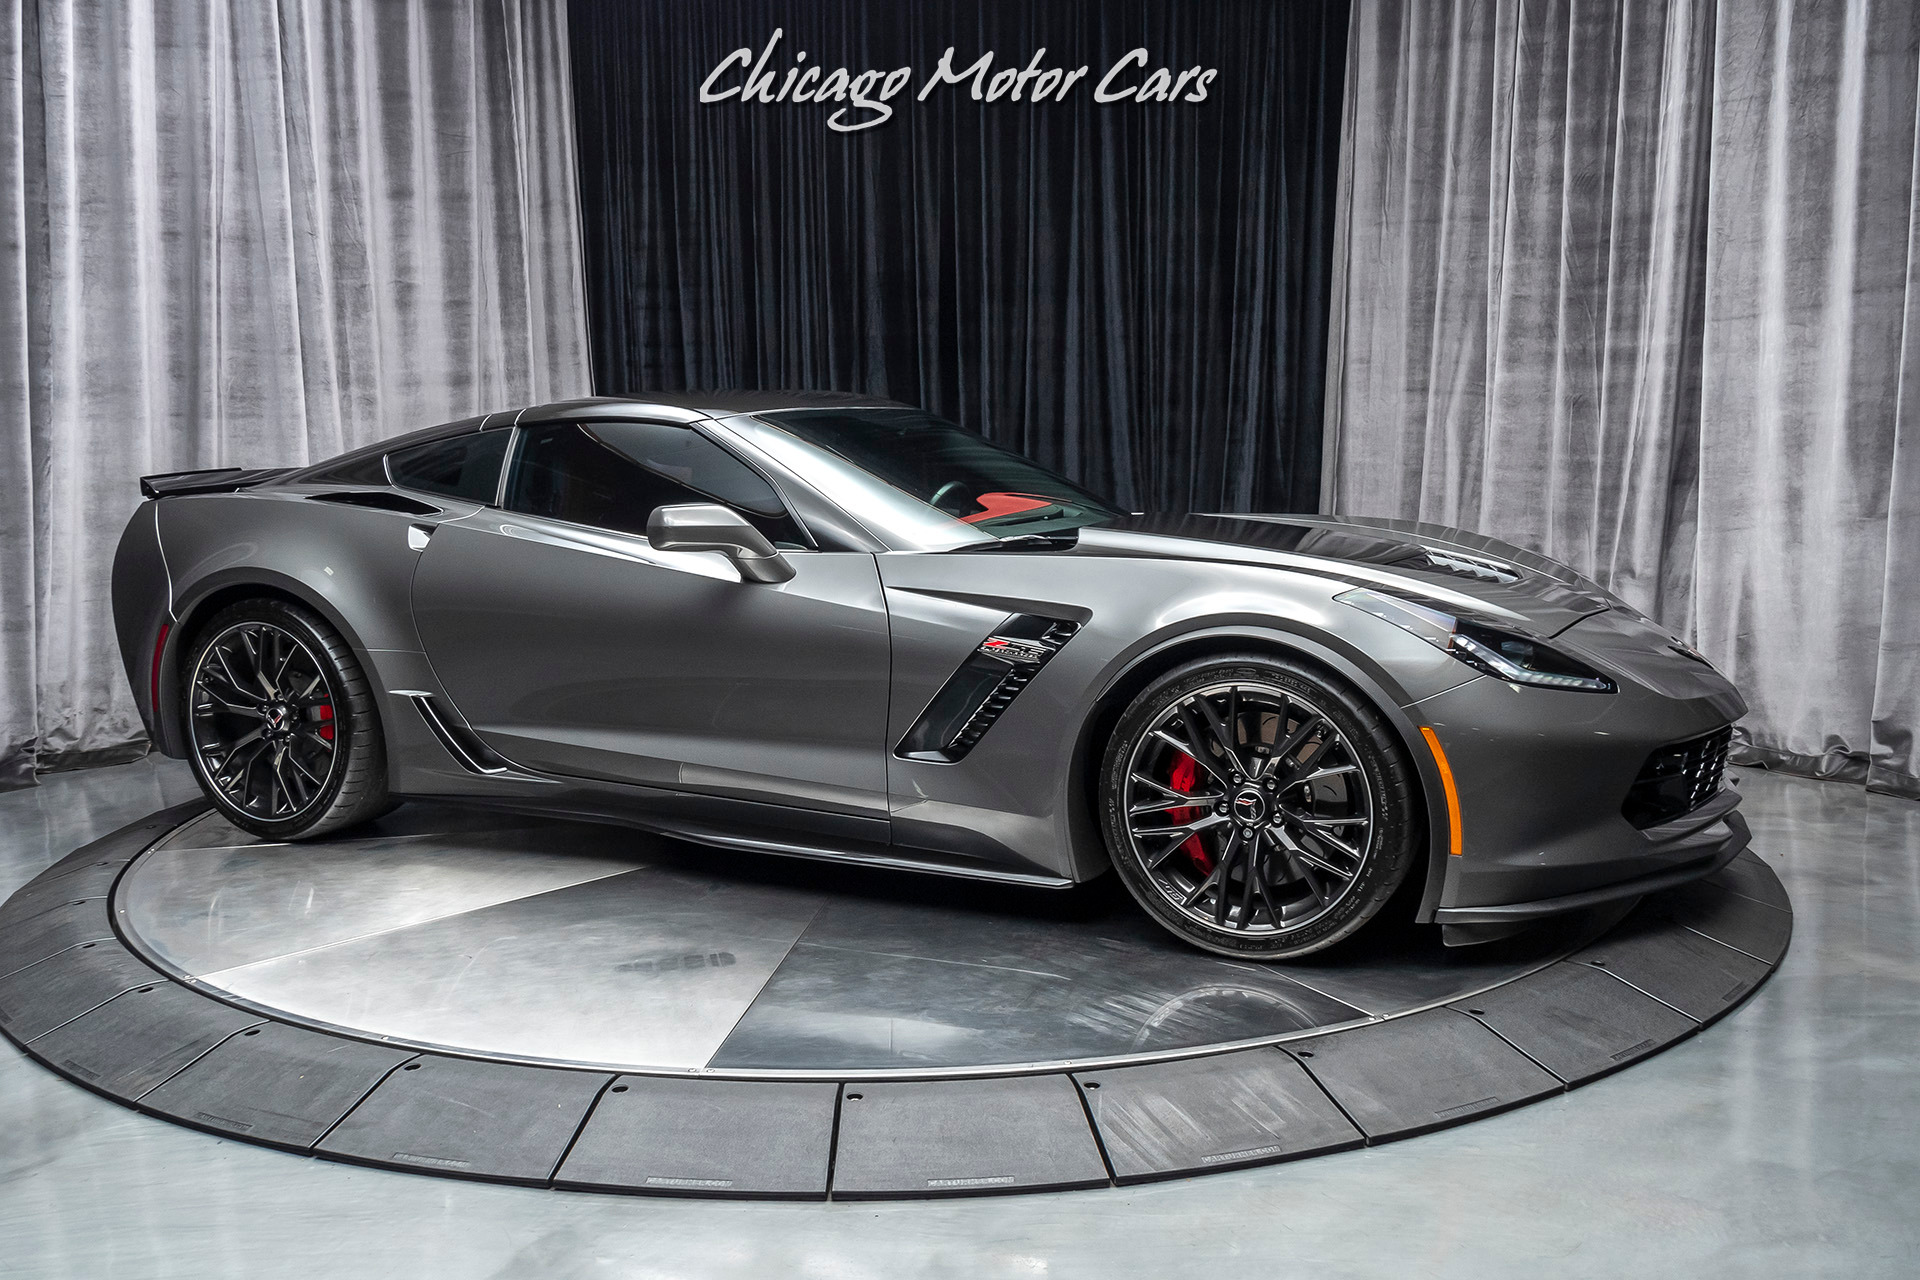 2016 Corvette Z06 For Sale >> Used 2016 Chevrolet Corvette Z06 2lz Coupe Upgrades 700whp For Sale